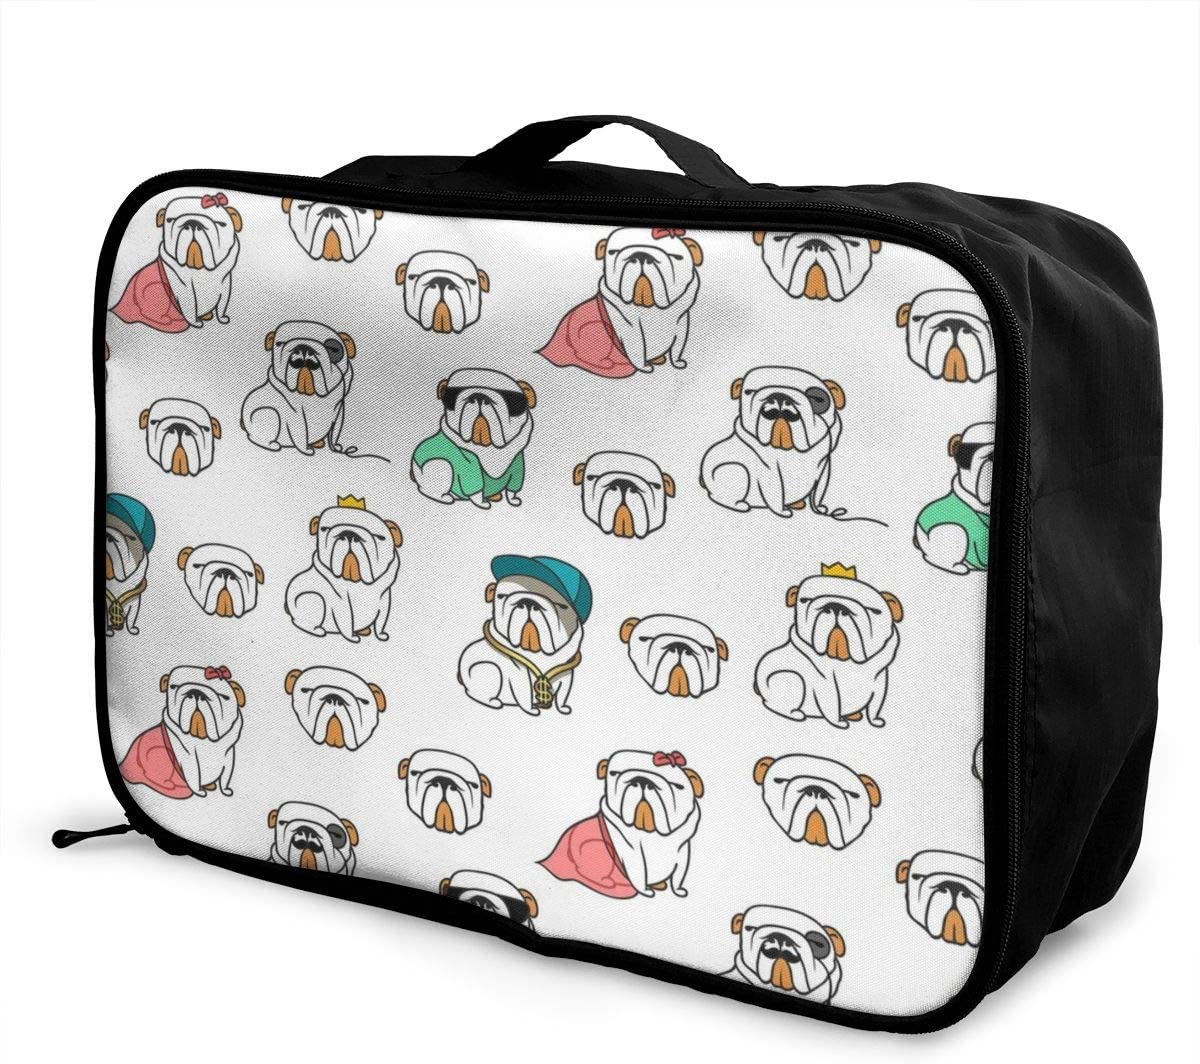 Yunshm English Bulldog Pattern Seamless Vector Image Customized Trolley Handbag Waterproof Unisex Large Capacity For Business Travel Storage